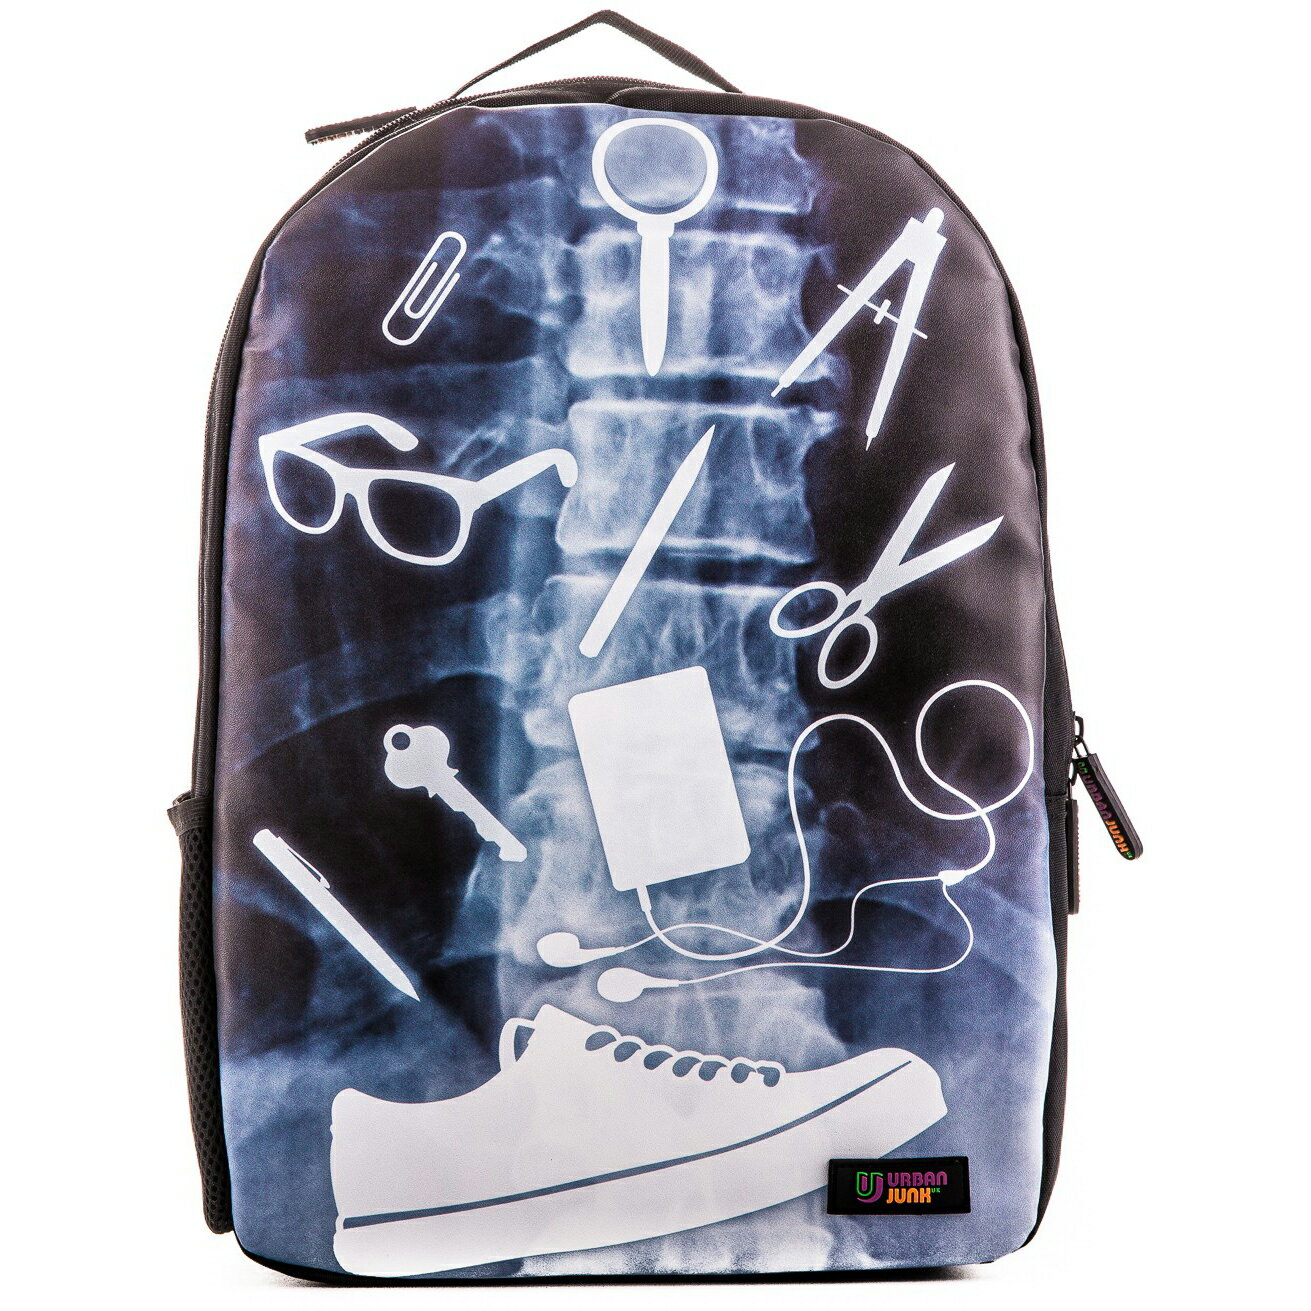 Urban Junk X-Ray Student Backpack 0